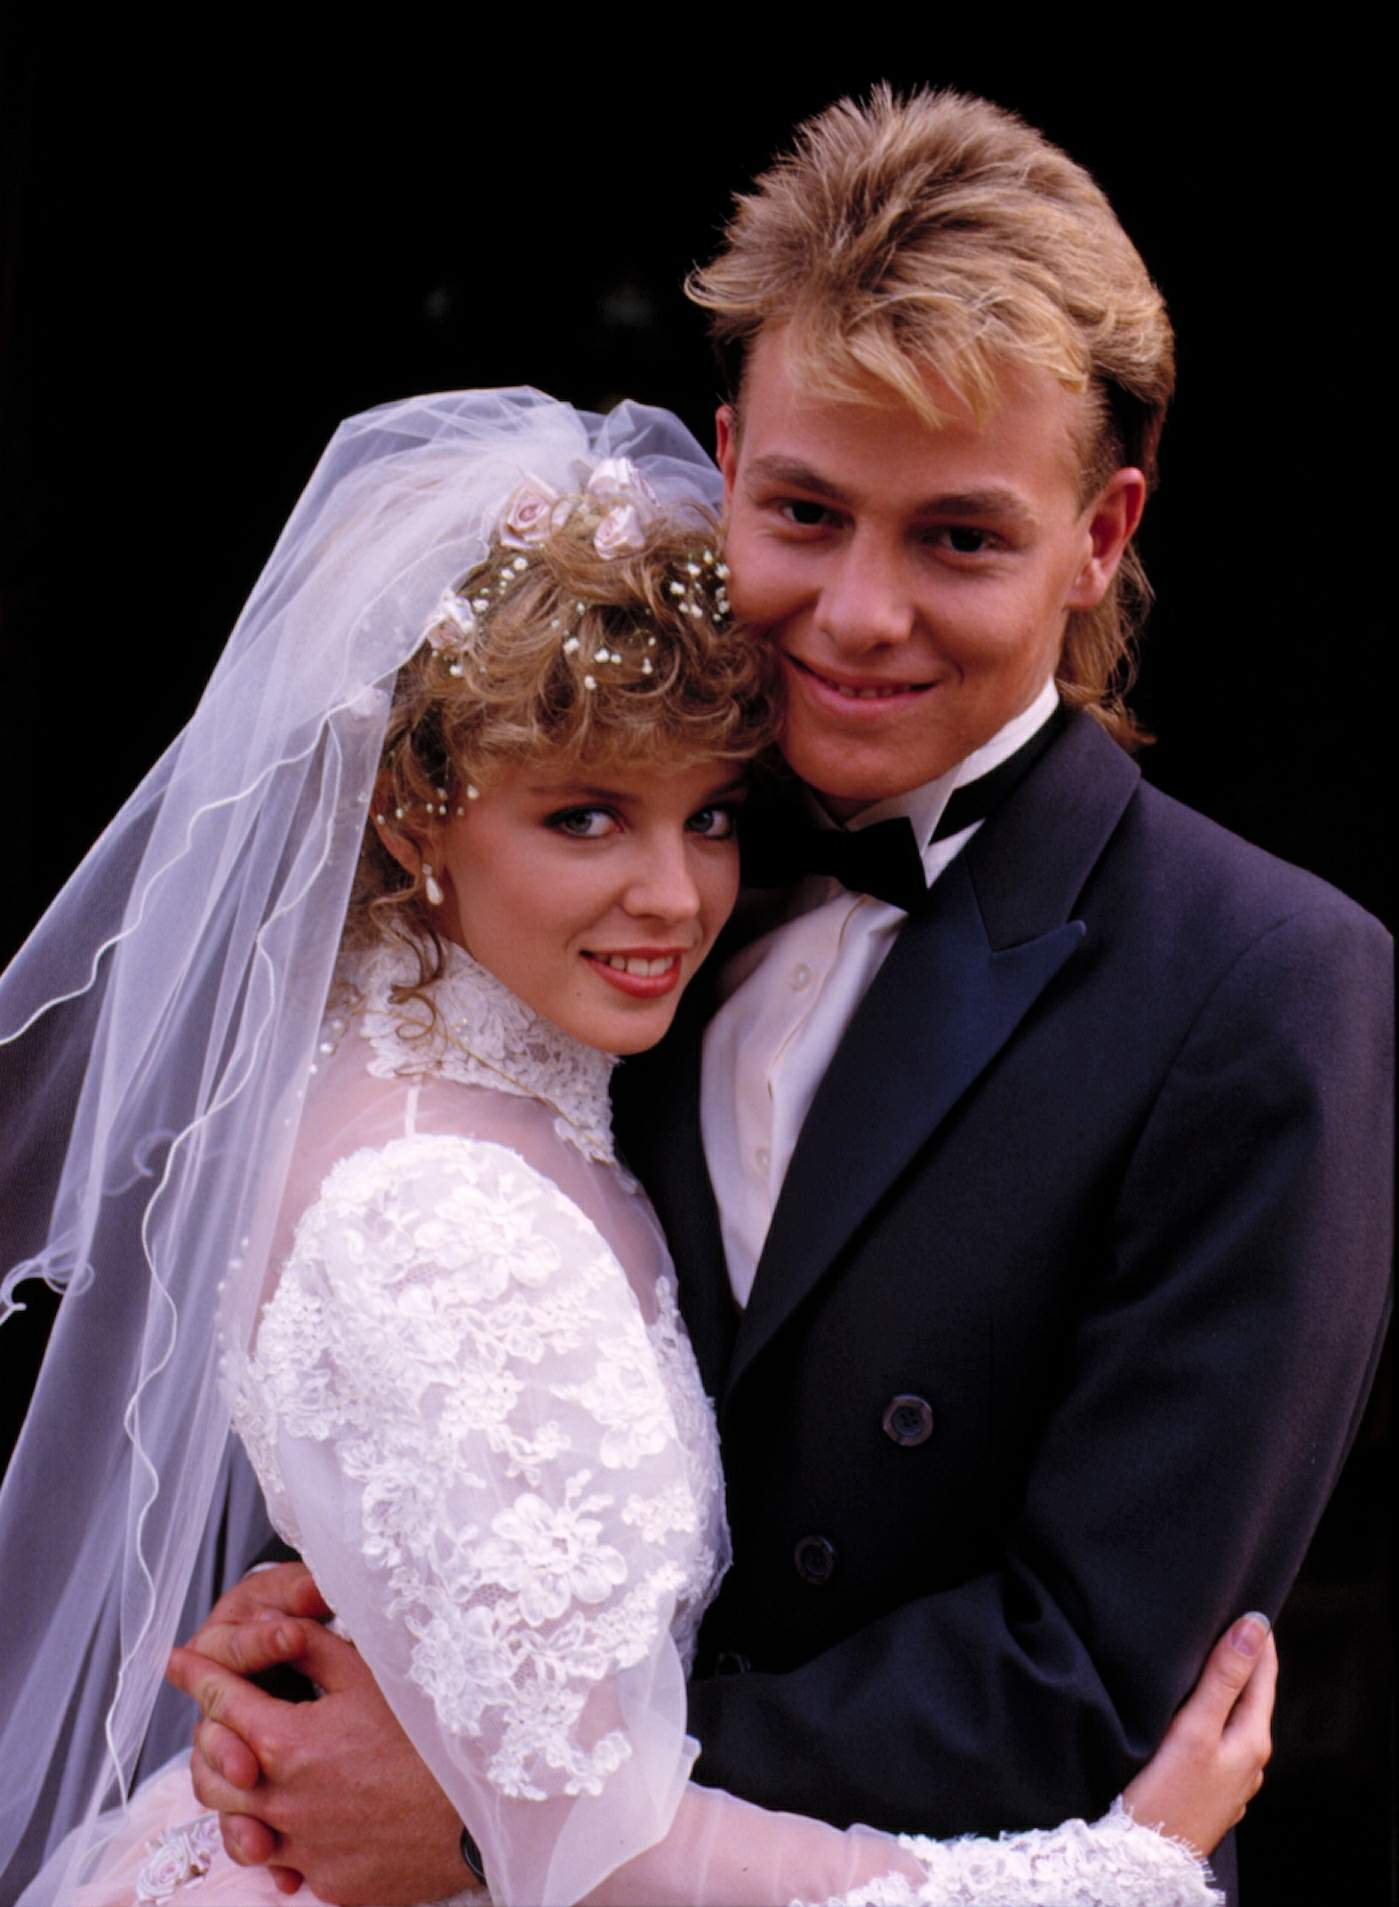 Scott and Charlene's wedding was a seminal television moment in Australia - as was the bride's gown!